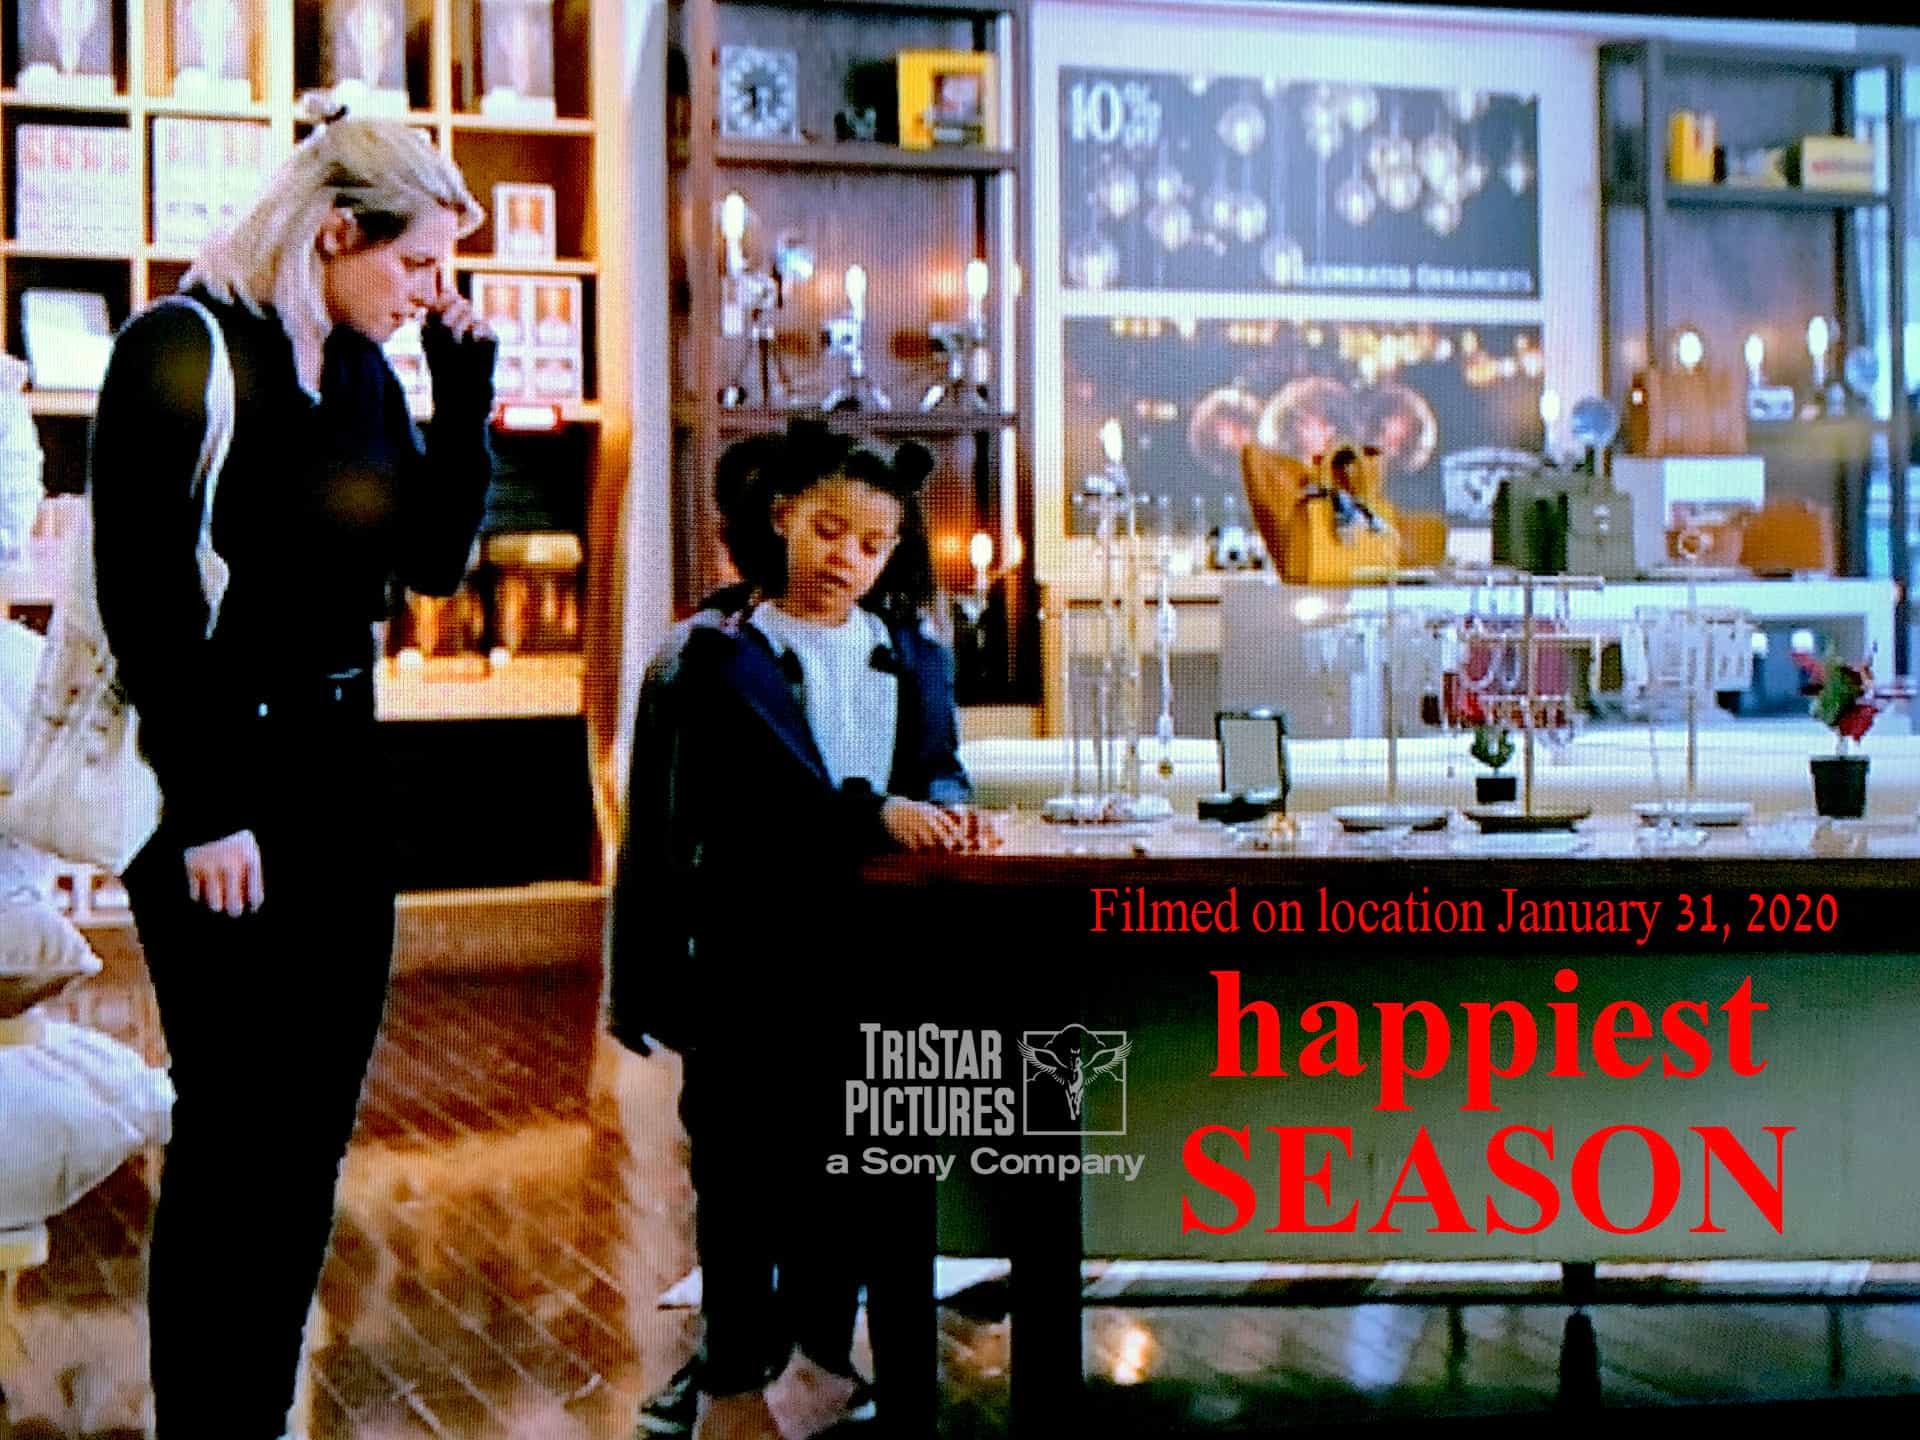 Rosie's Workshop was featured during the shoplifting scene in Happiest Season starring Kristen Stewart. Copyright Hulu and Sony/TriStar pictures.